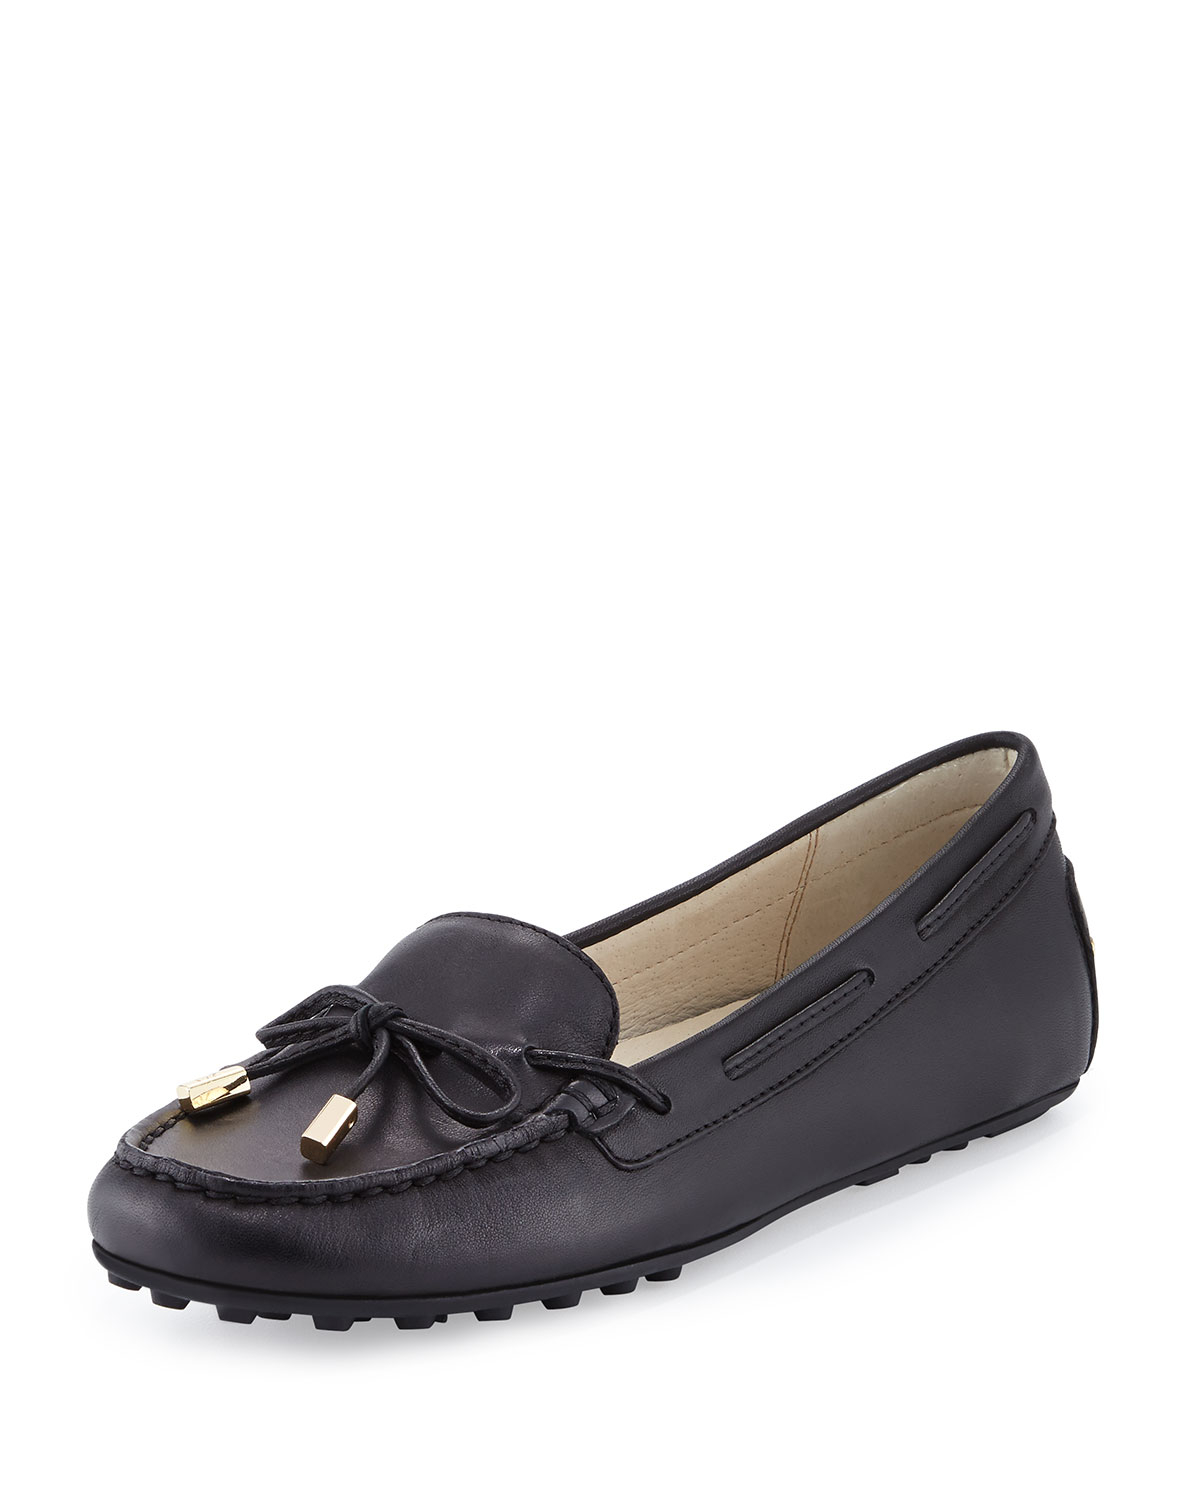 Michael michael kors Daisy Leather Moccasin Loafer in ...